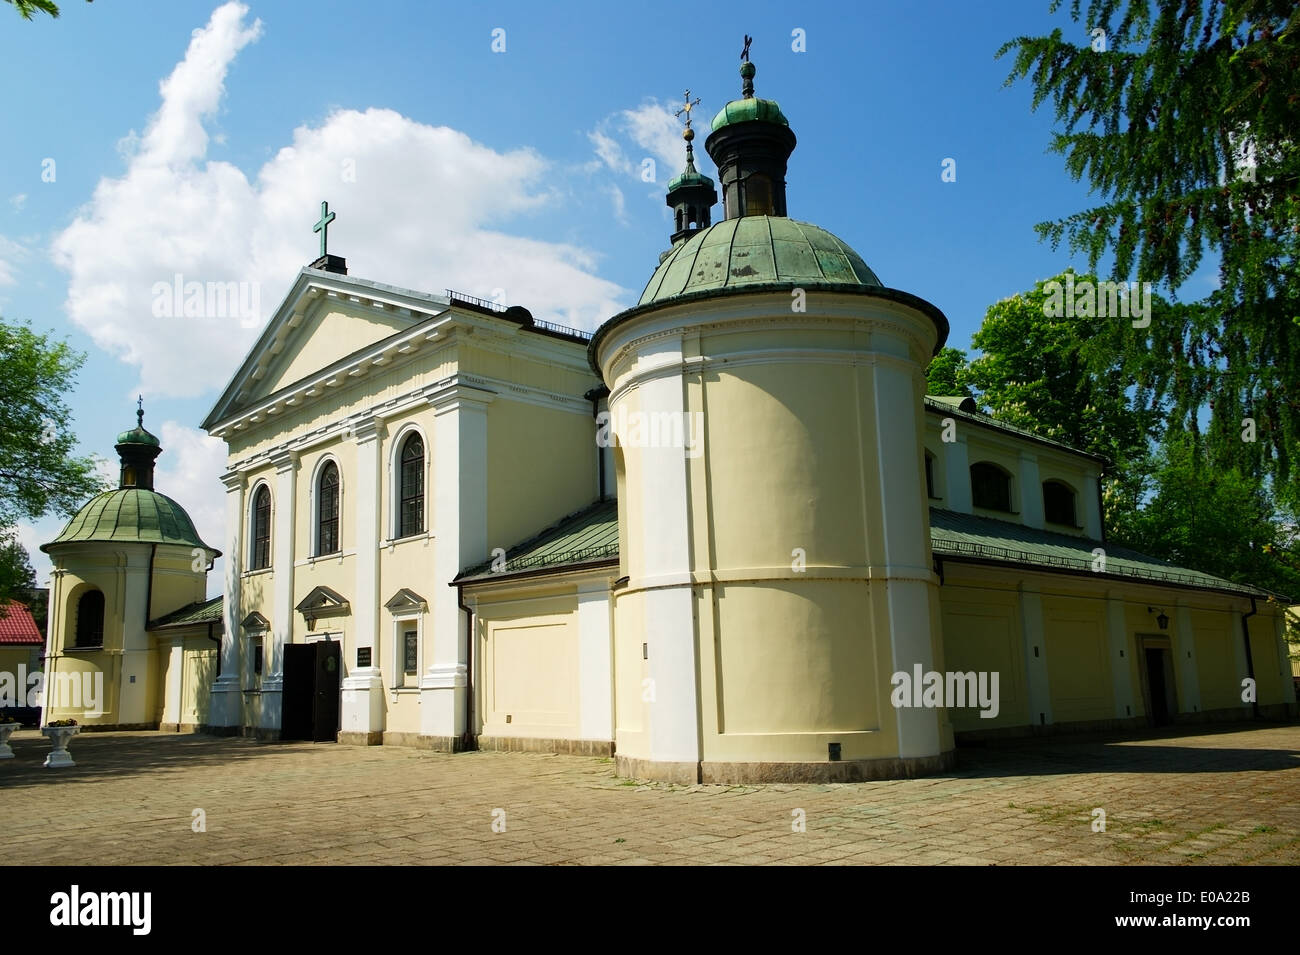 Church of Our Lady of Loreto in Warsaw, Poland Stock Photo